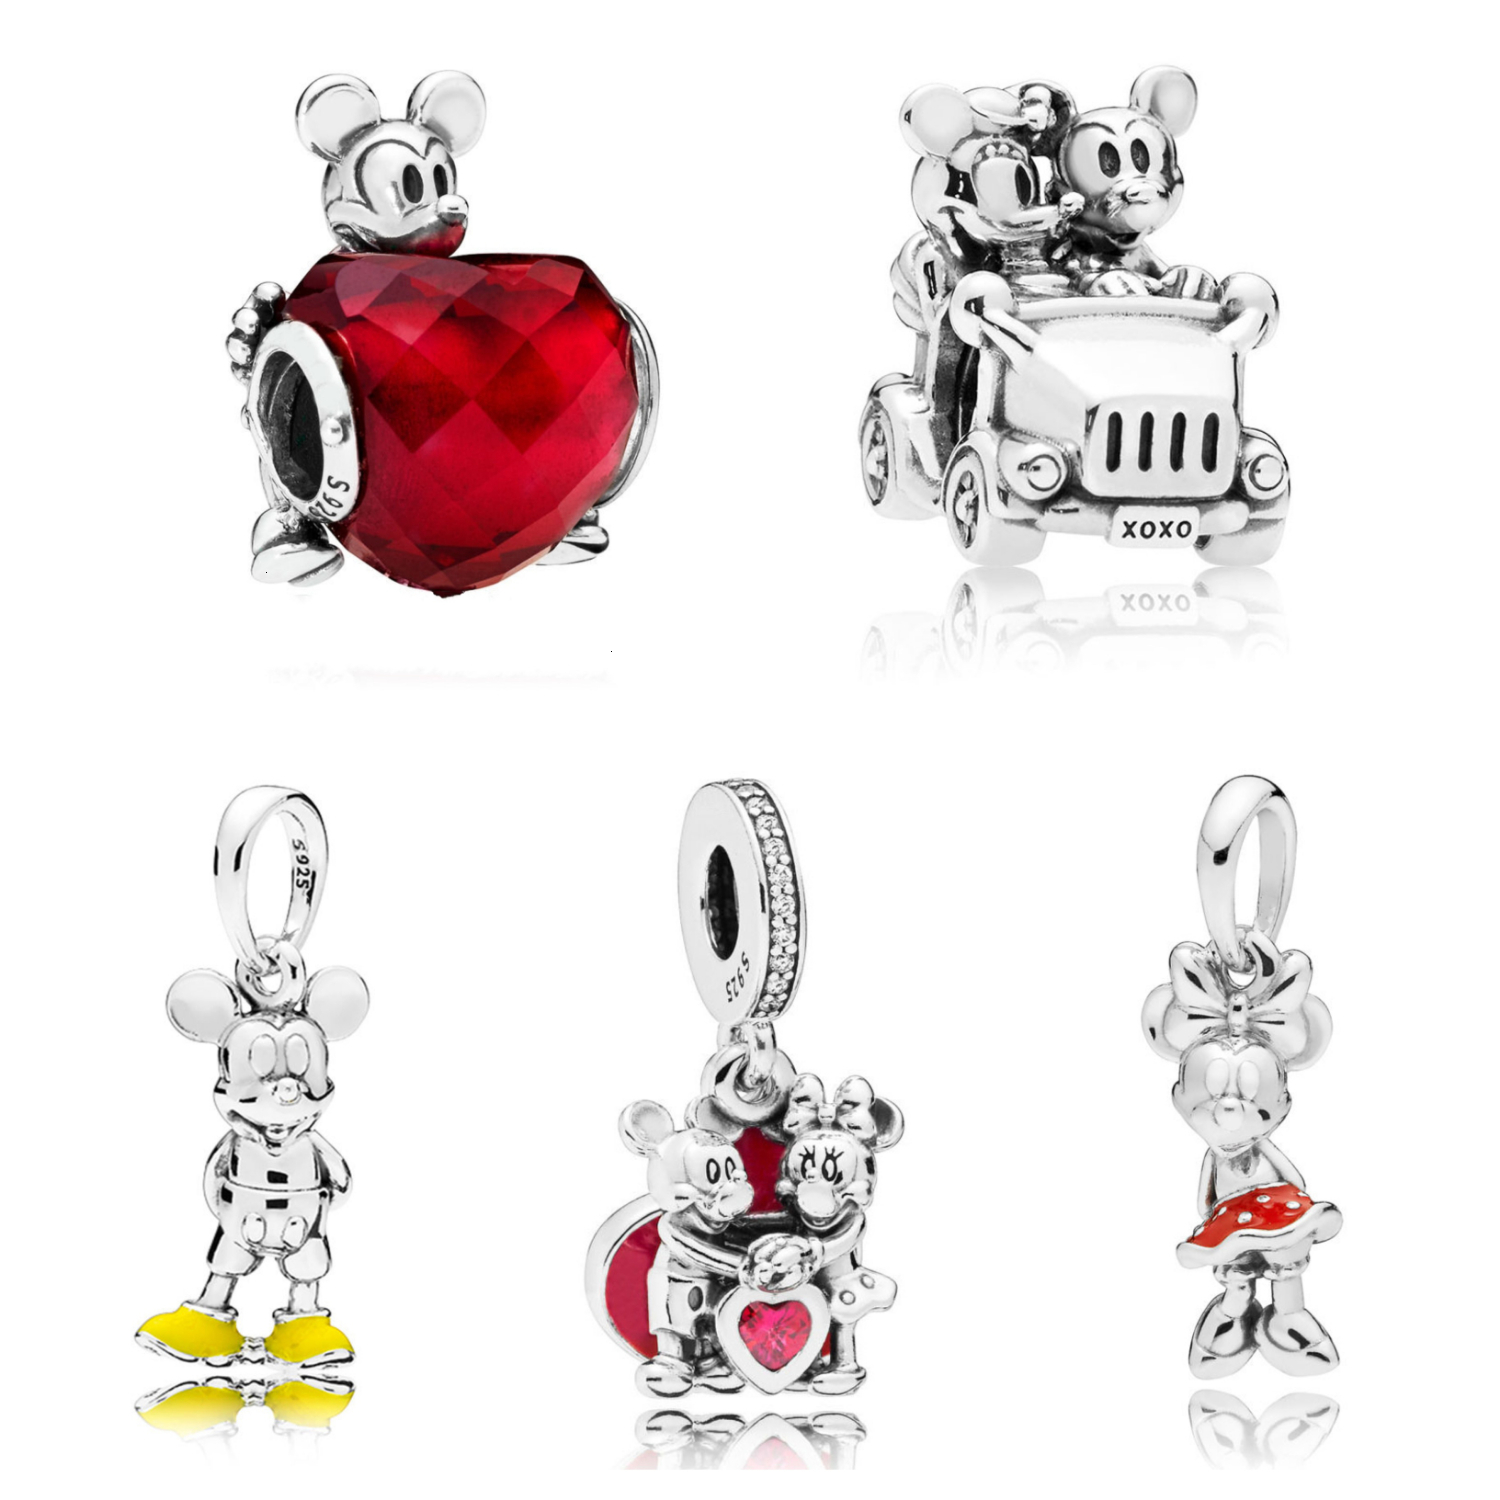 Authentic 925 Sterling Silver Cartoon Mickey Minnie Cute Romantic Love Charm Bead Fit Original Europe Dangle Bracelet